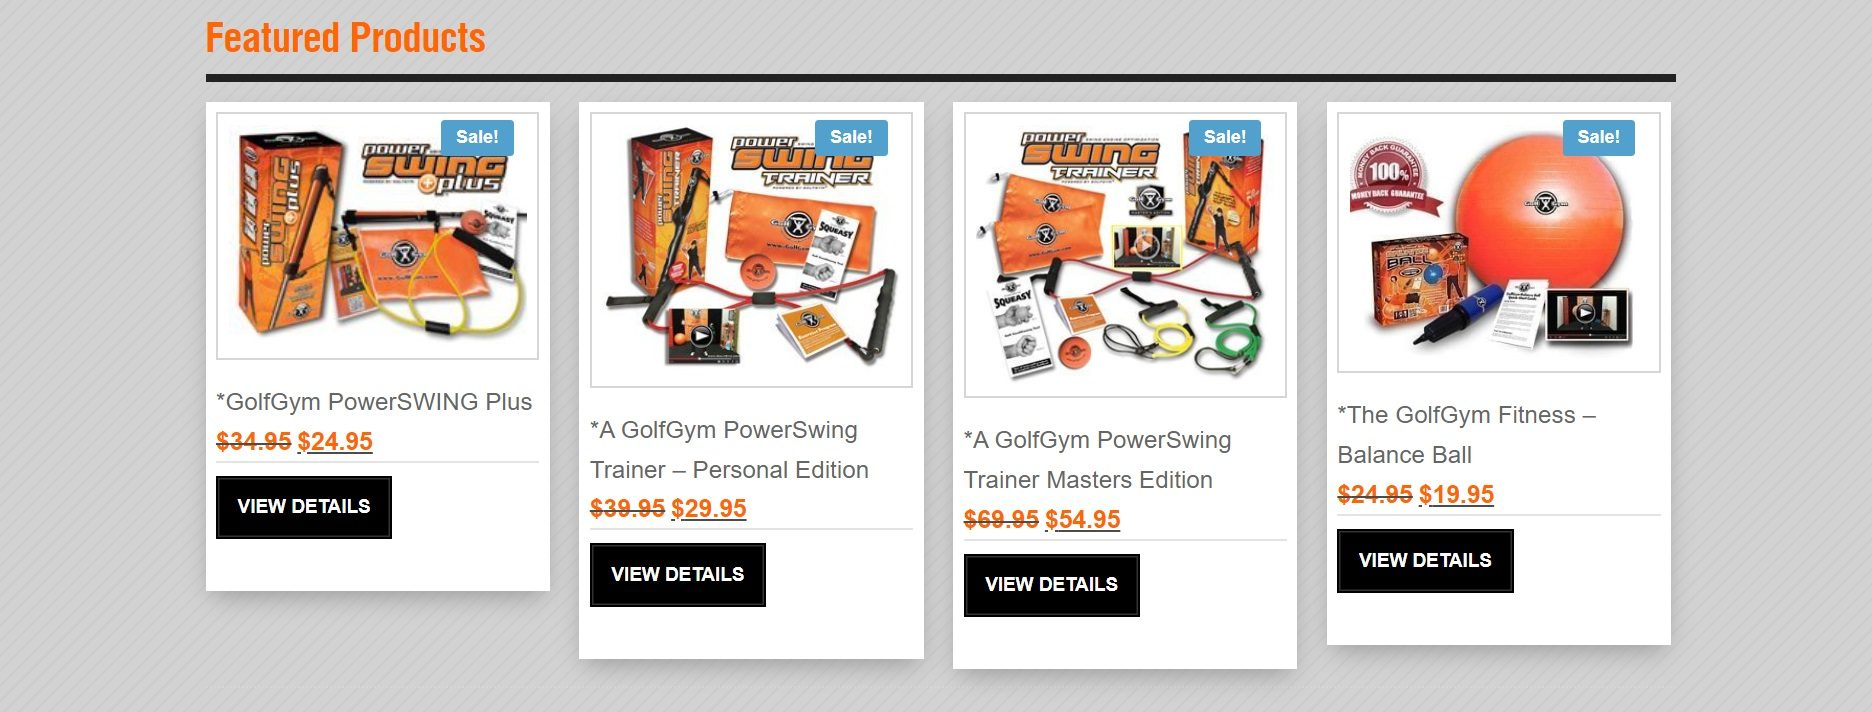 Golfgym Featured Products